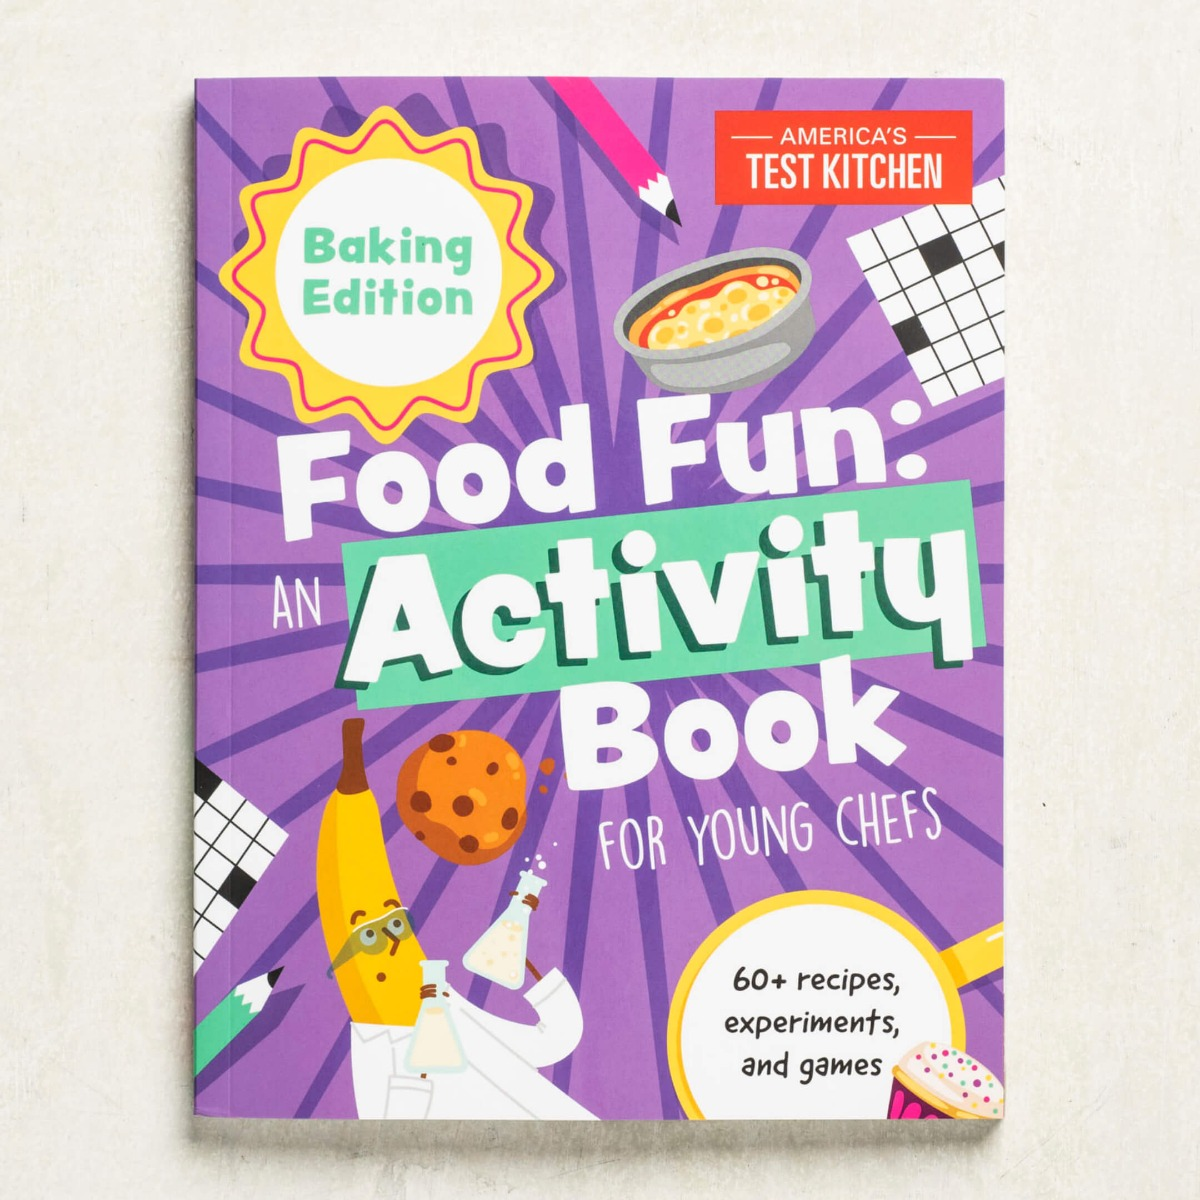 Food Fun: An Activity Book for Young Chefs